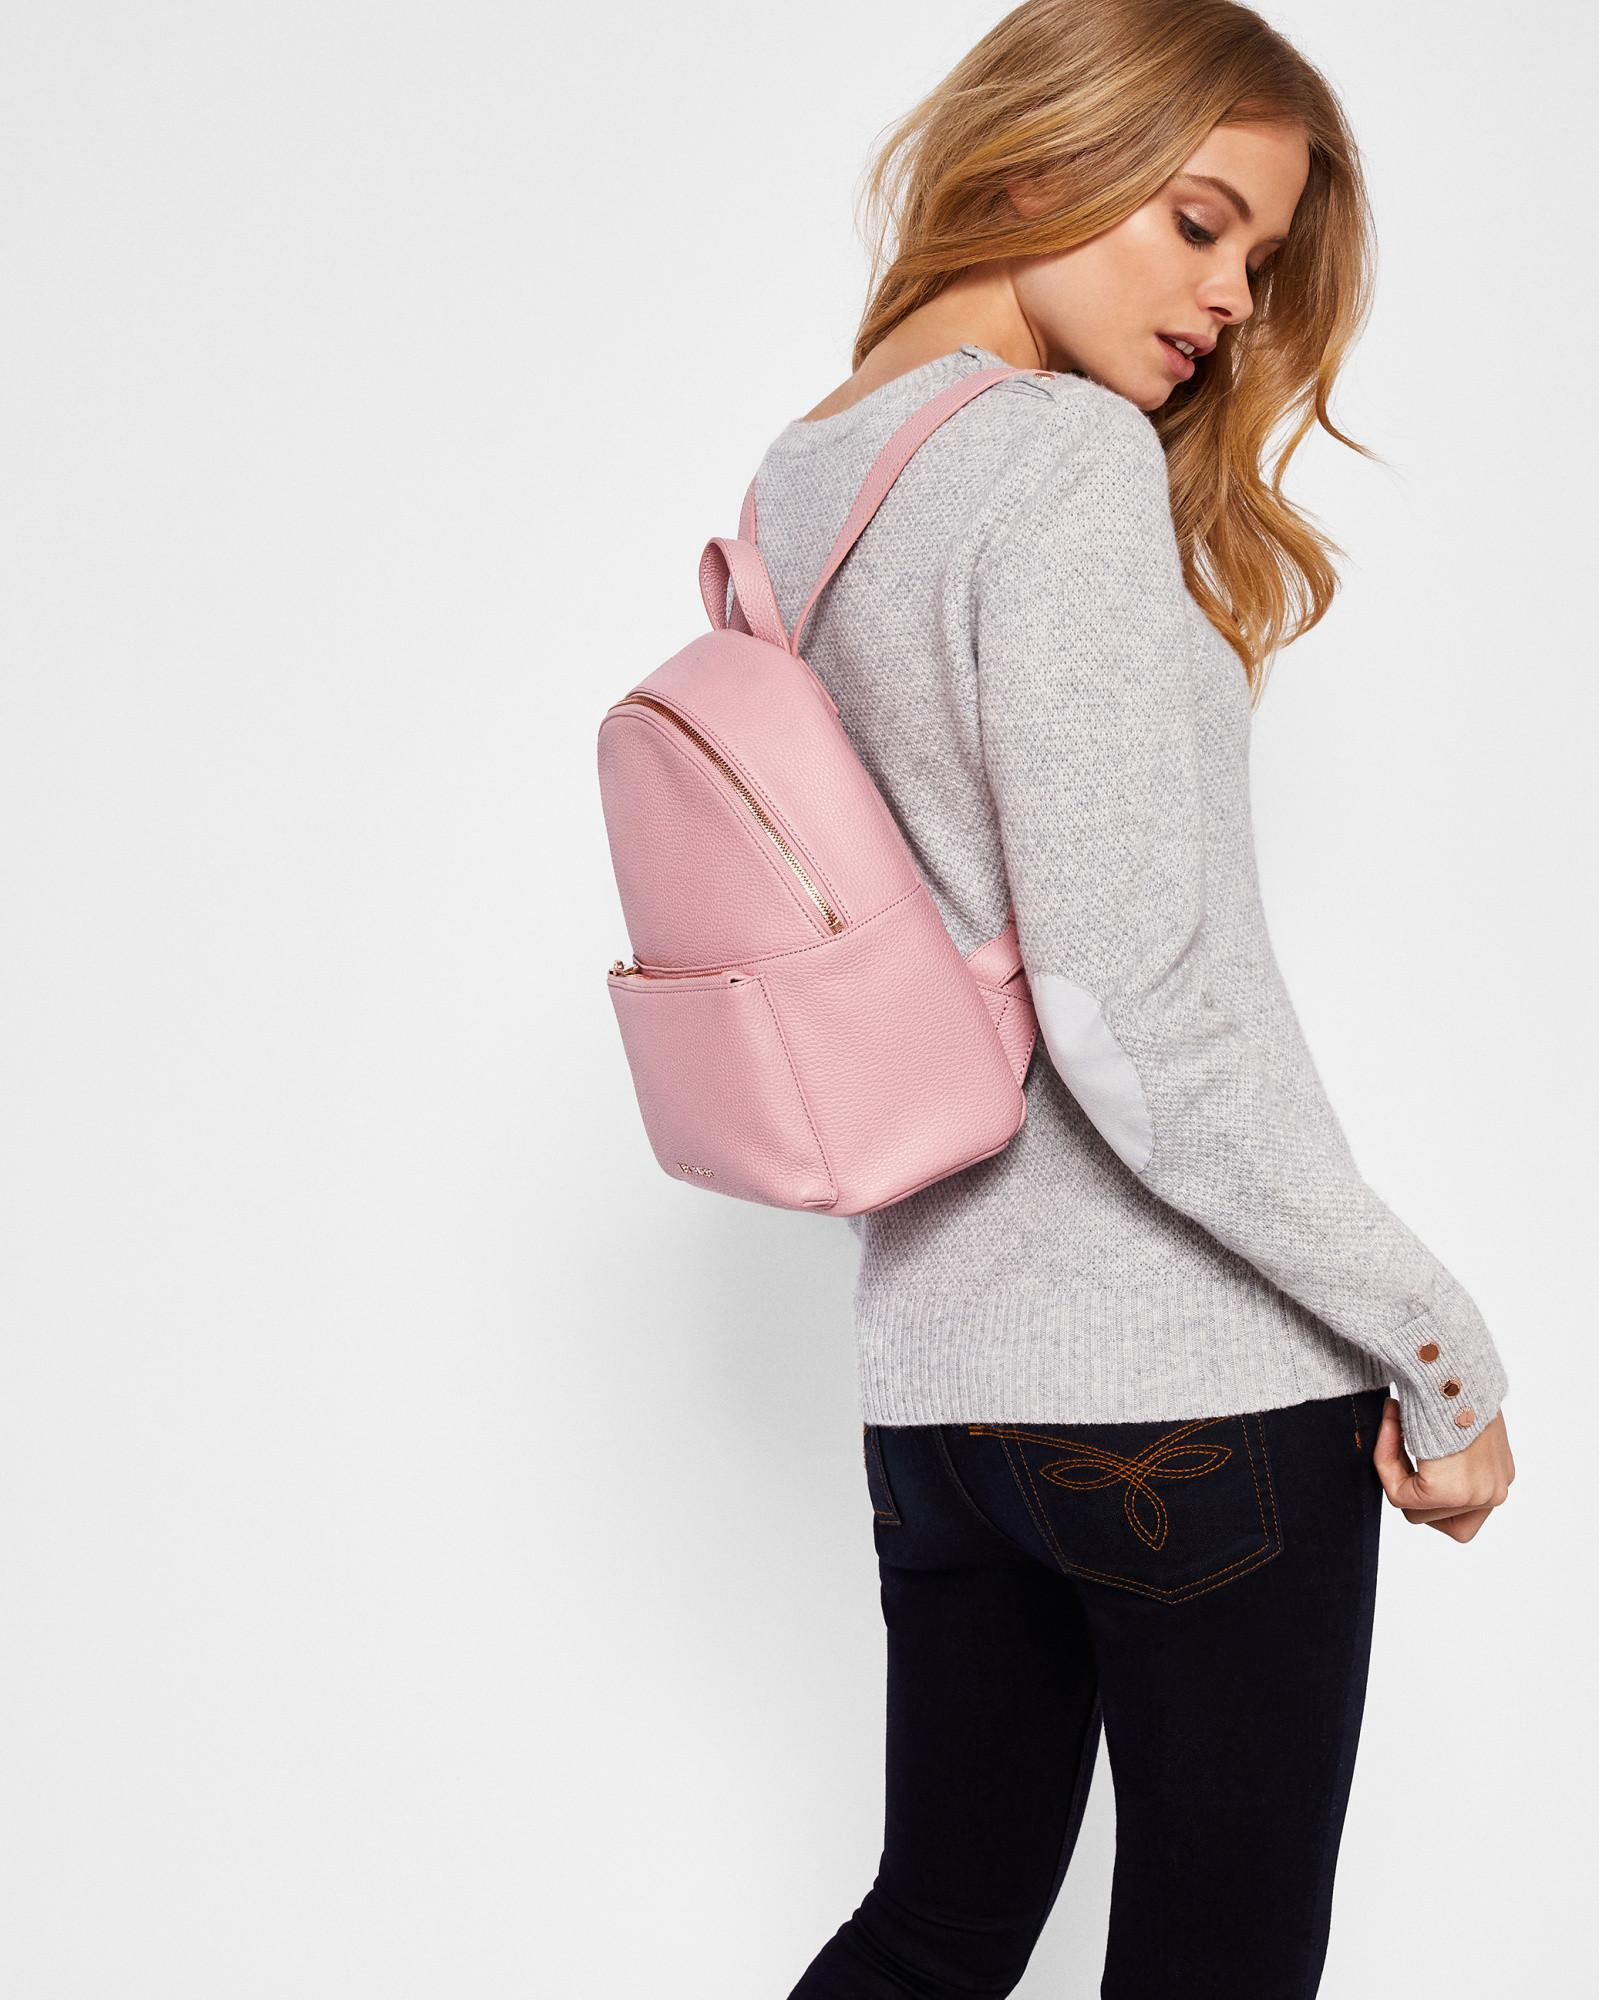 2c3b50e6d Ted Baker Pearen Leather Backpack in Pink - Lyst